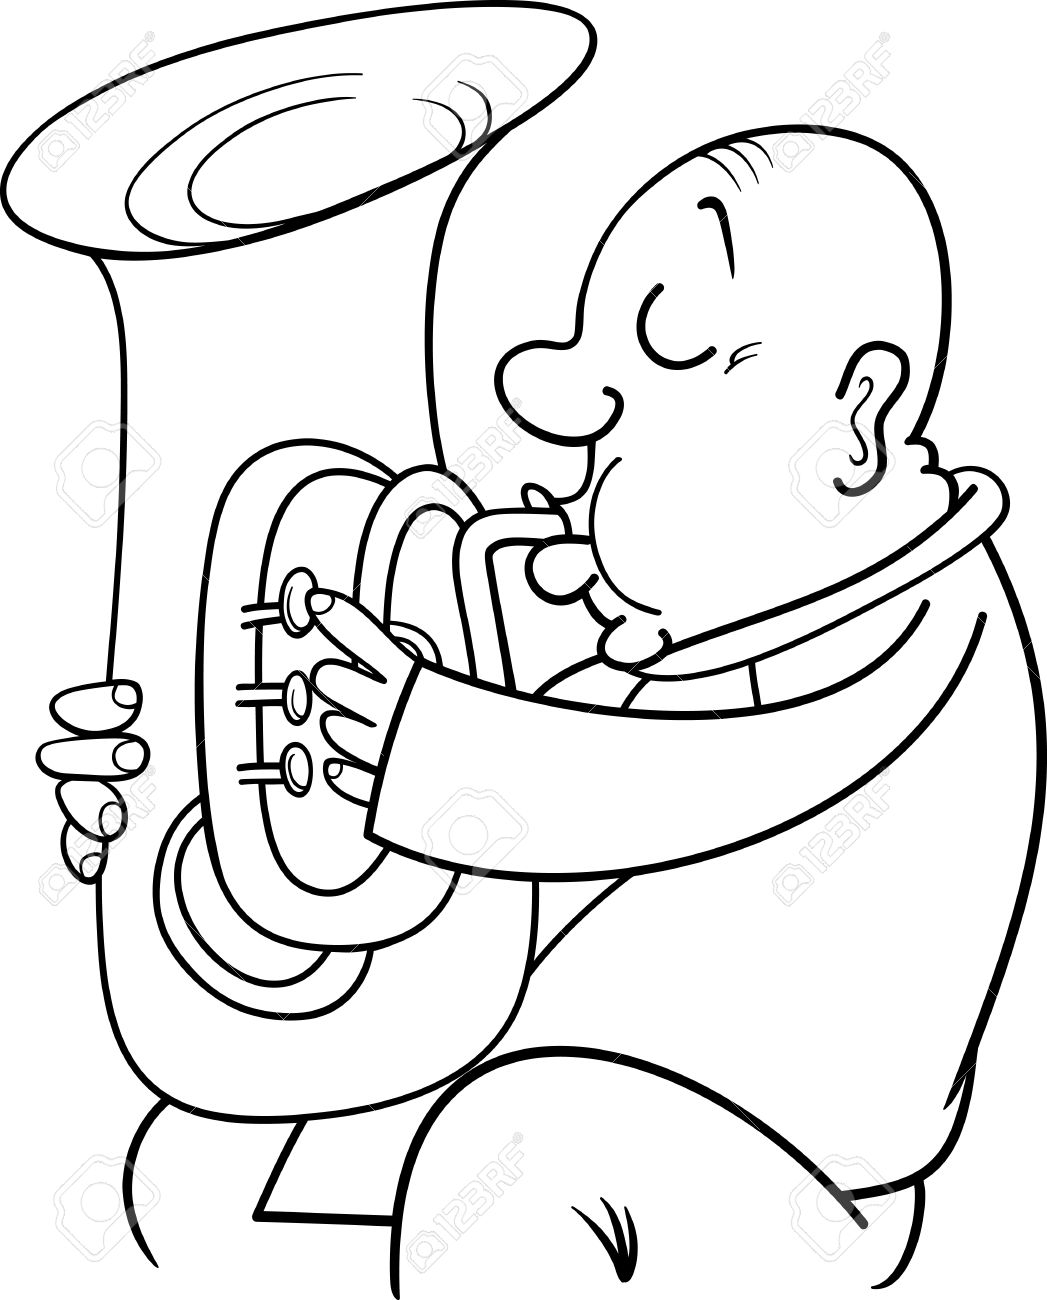 1047x1300 Black And White Cartoon Illustration Of Trumpeter Musician Playing